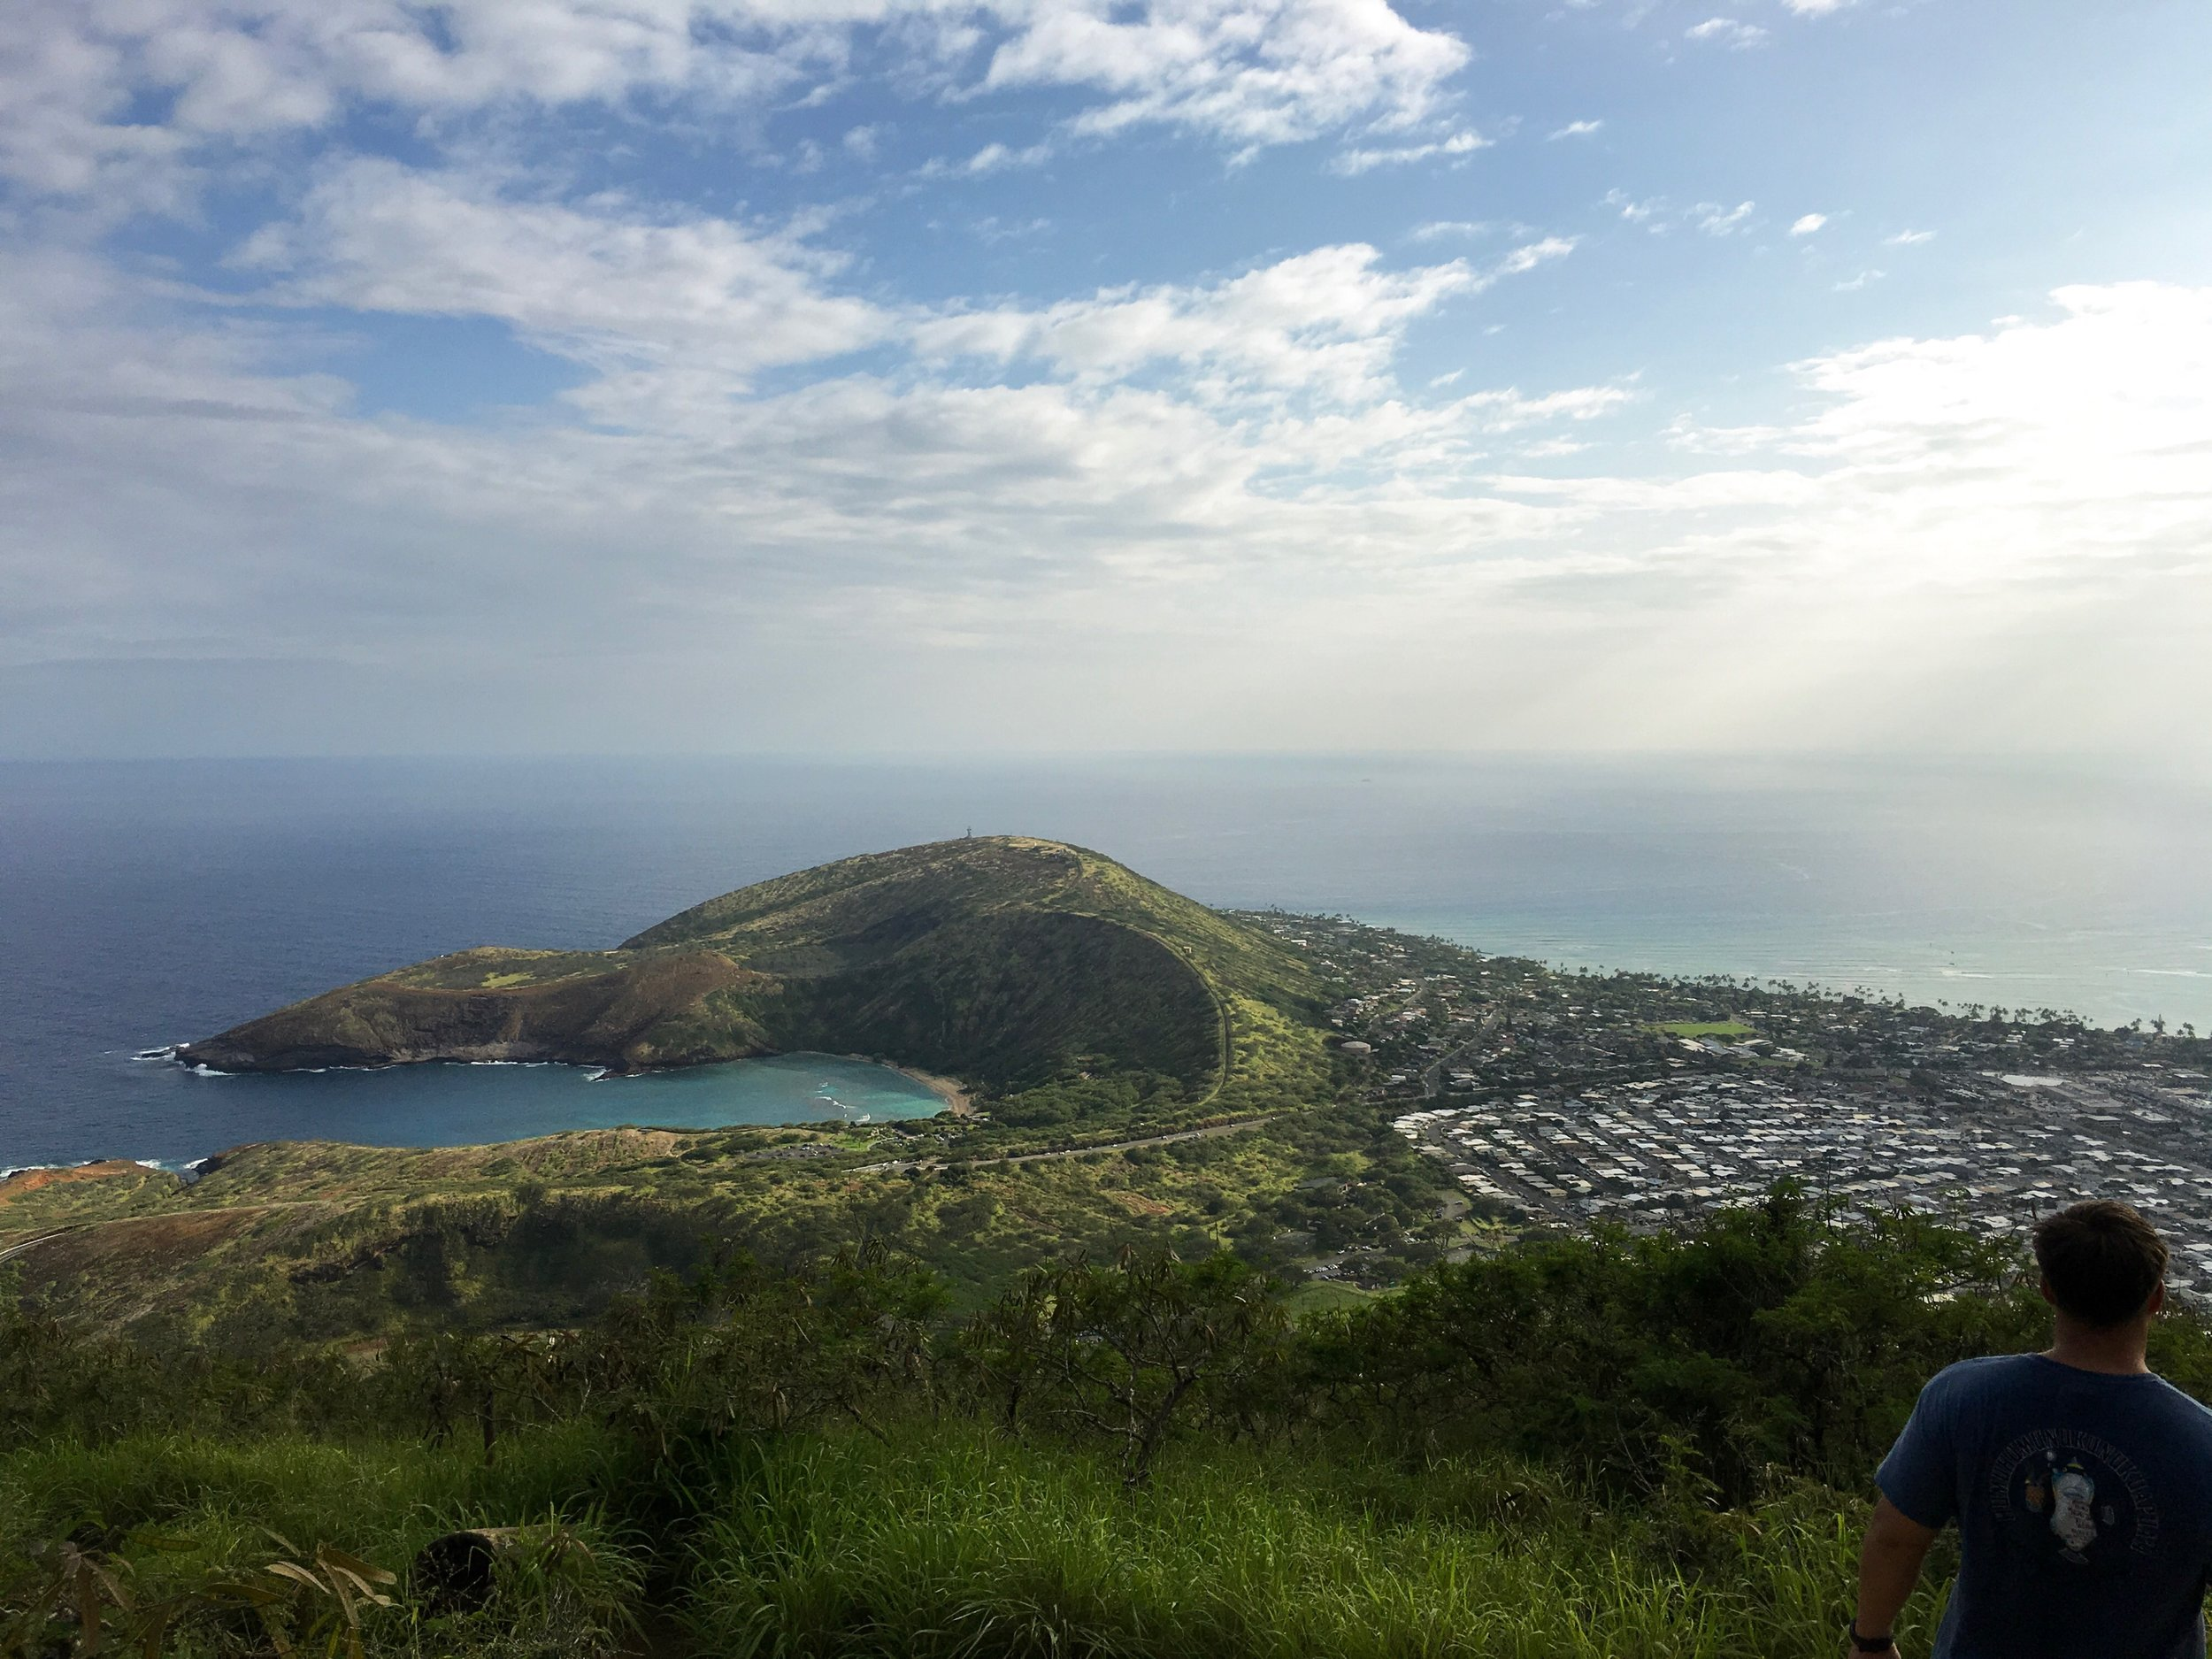 Views from the top of Koko Crater